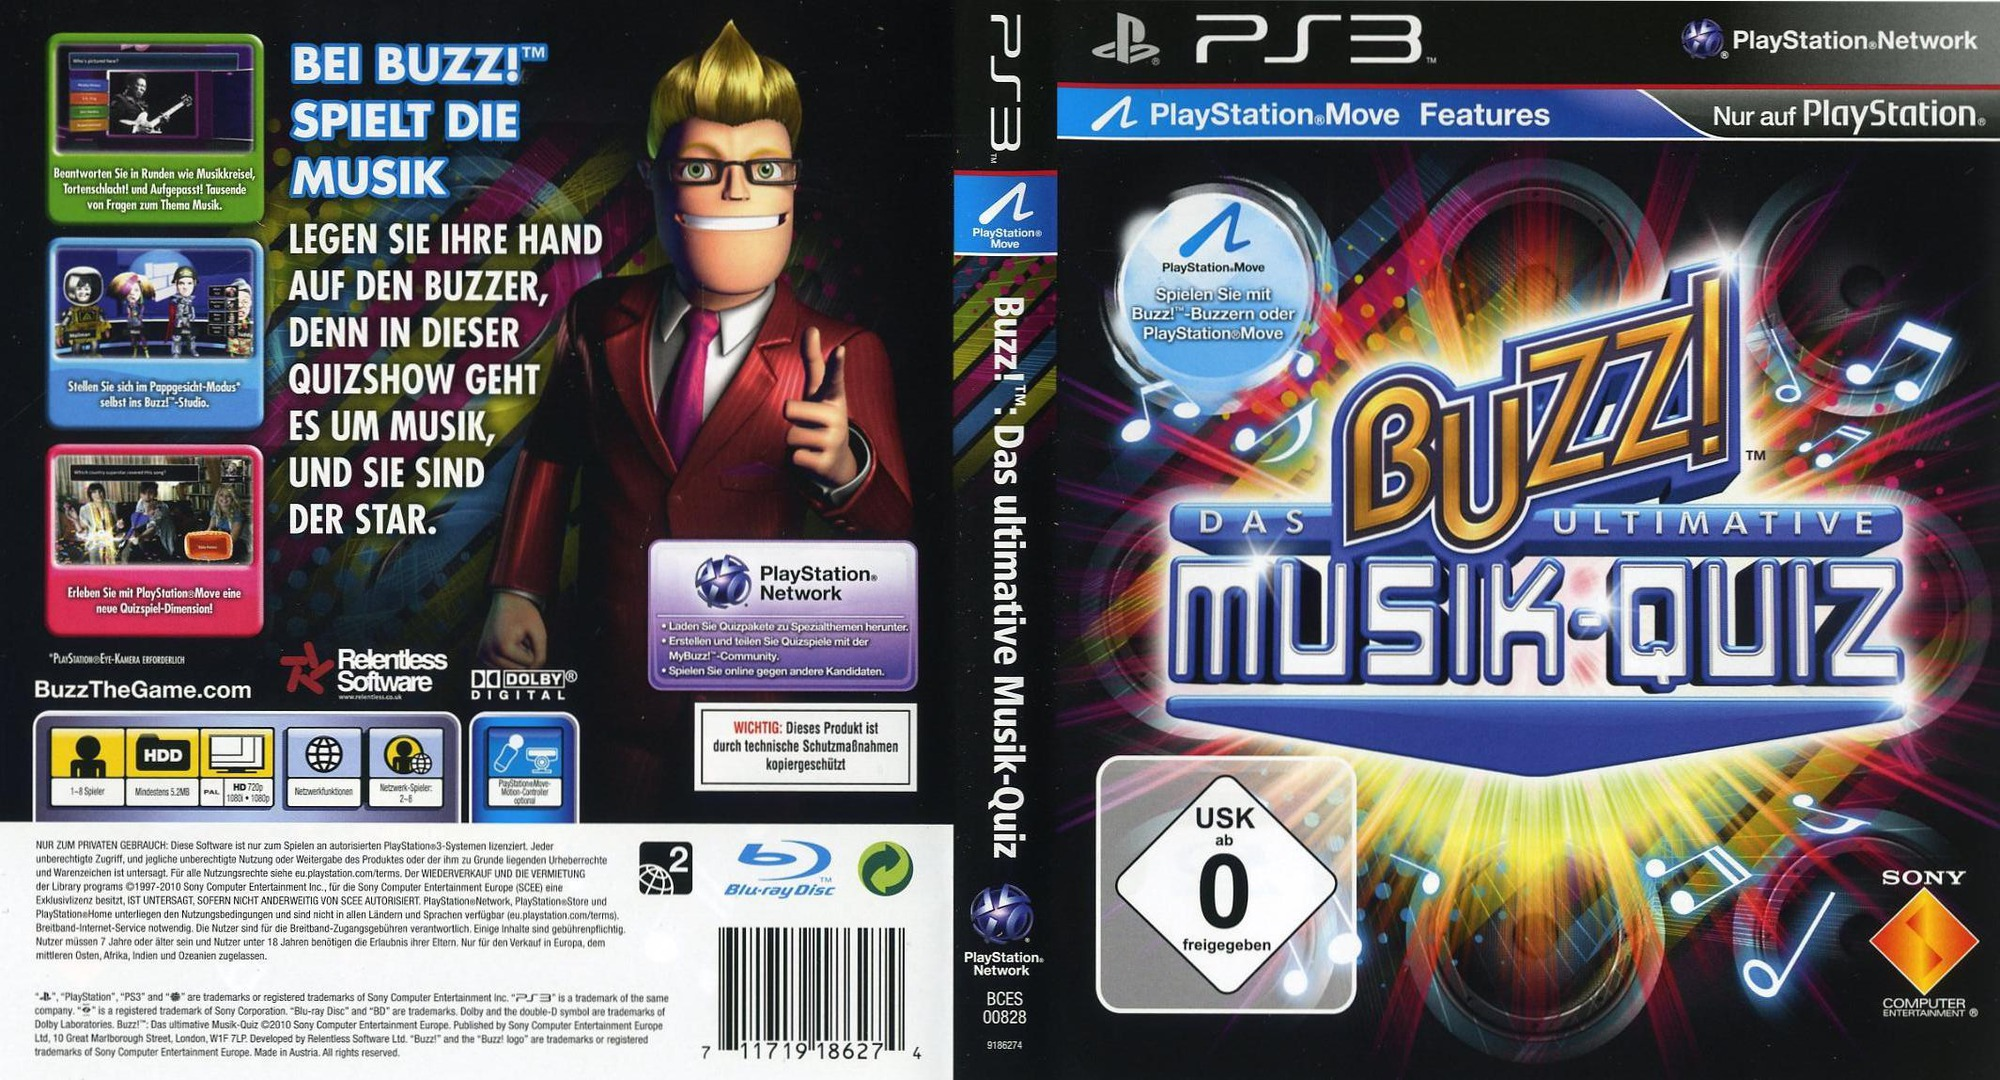 Buzz! Das Ultimative Musik Quiz PS3 coverfullHQ (BCES00828)